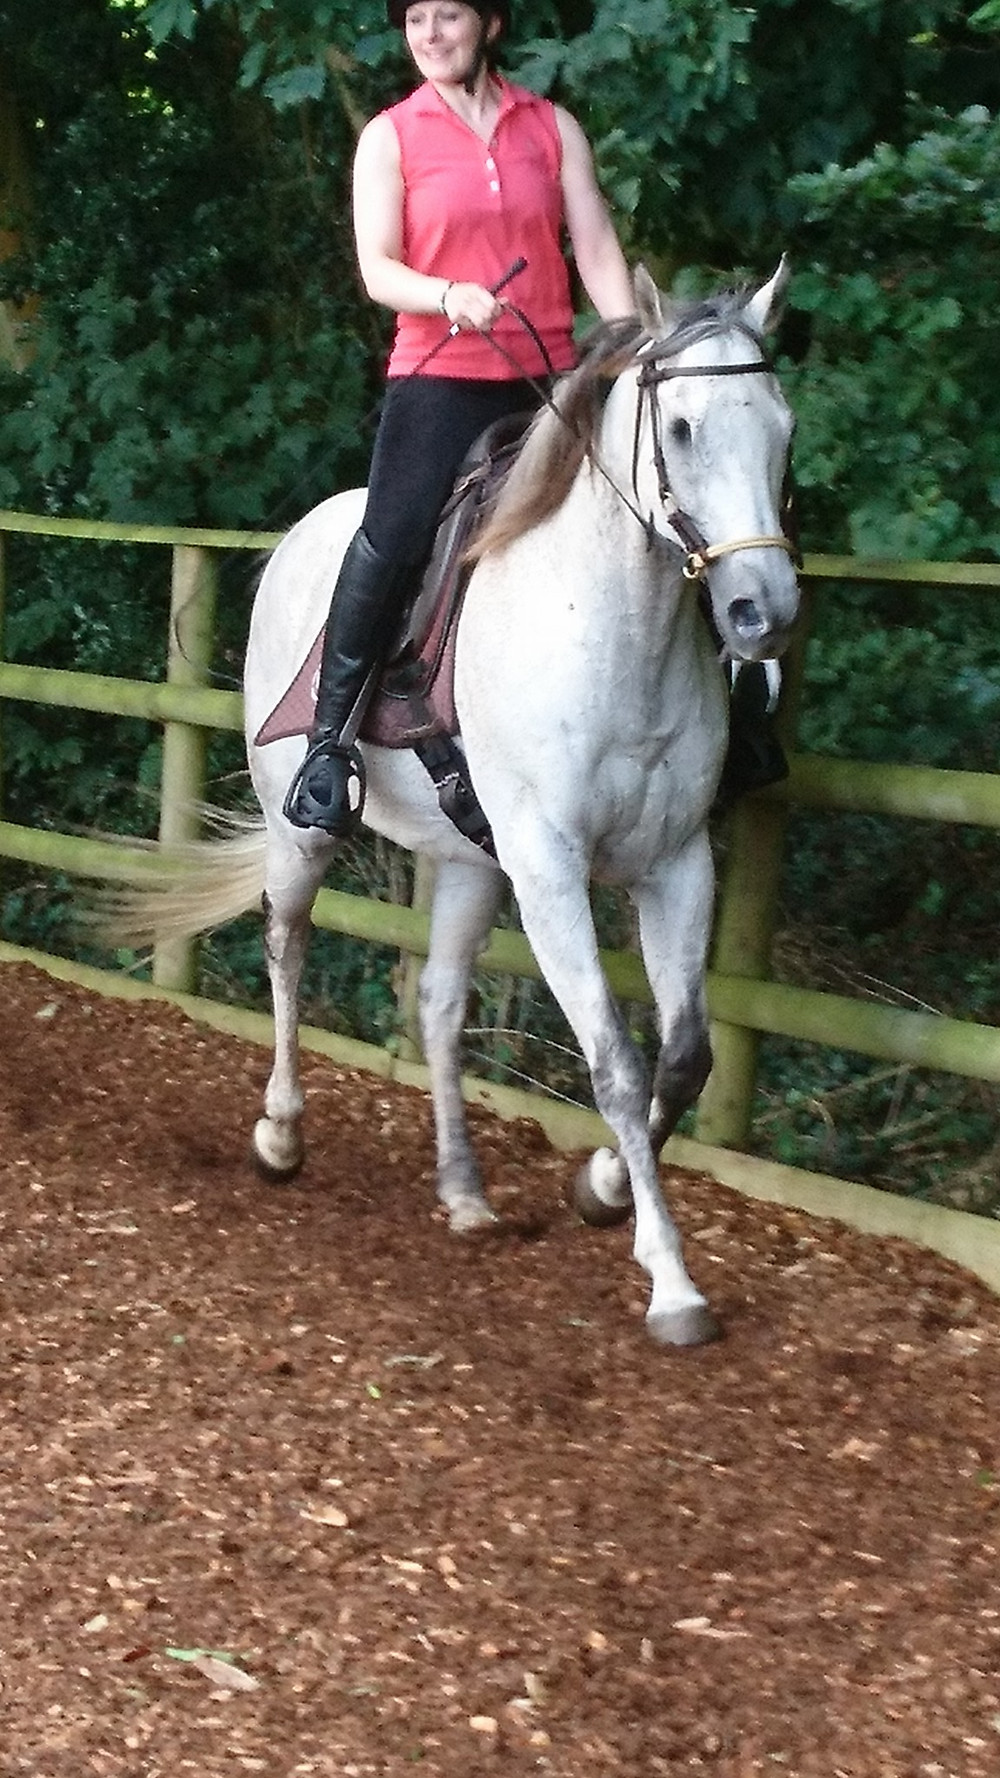 barefoot, one eyed thoroughbred being ridden in a bitless bridle and treeless saddle at Pippsway Classical Natural Horsemanship Wellington Somerset near Devon